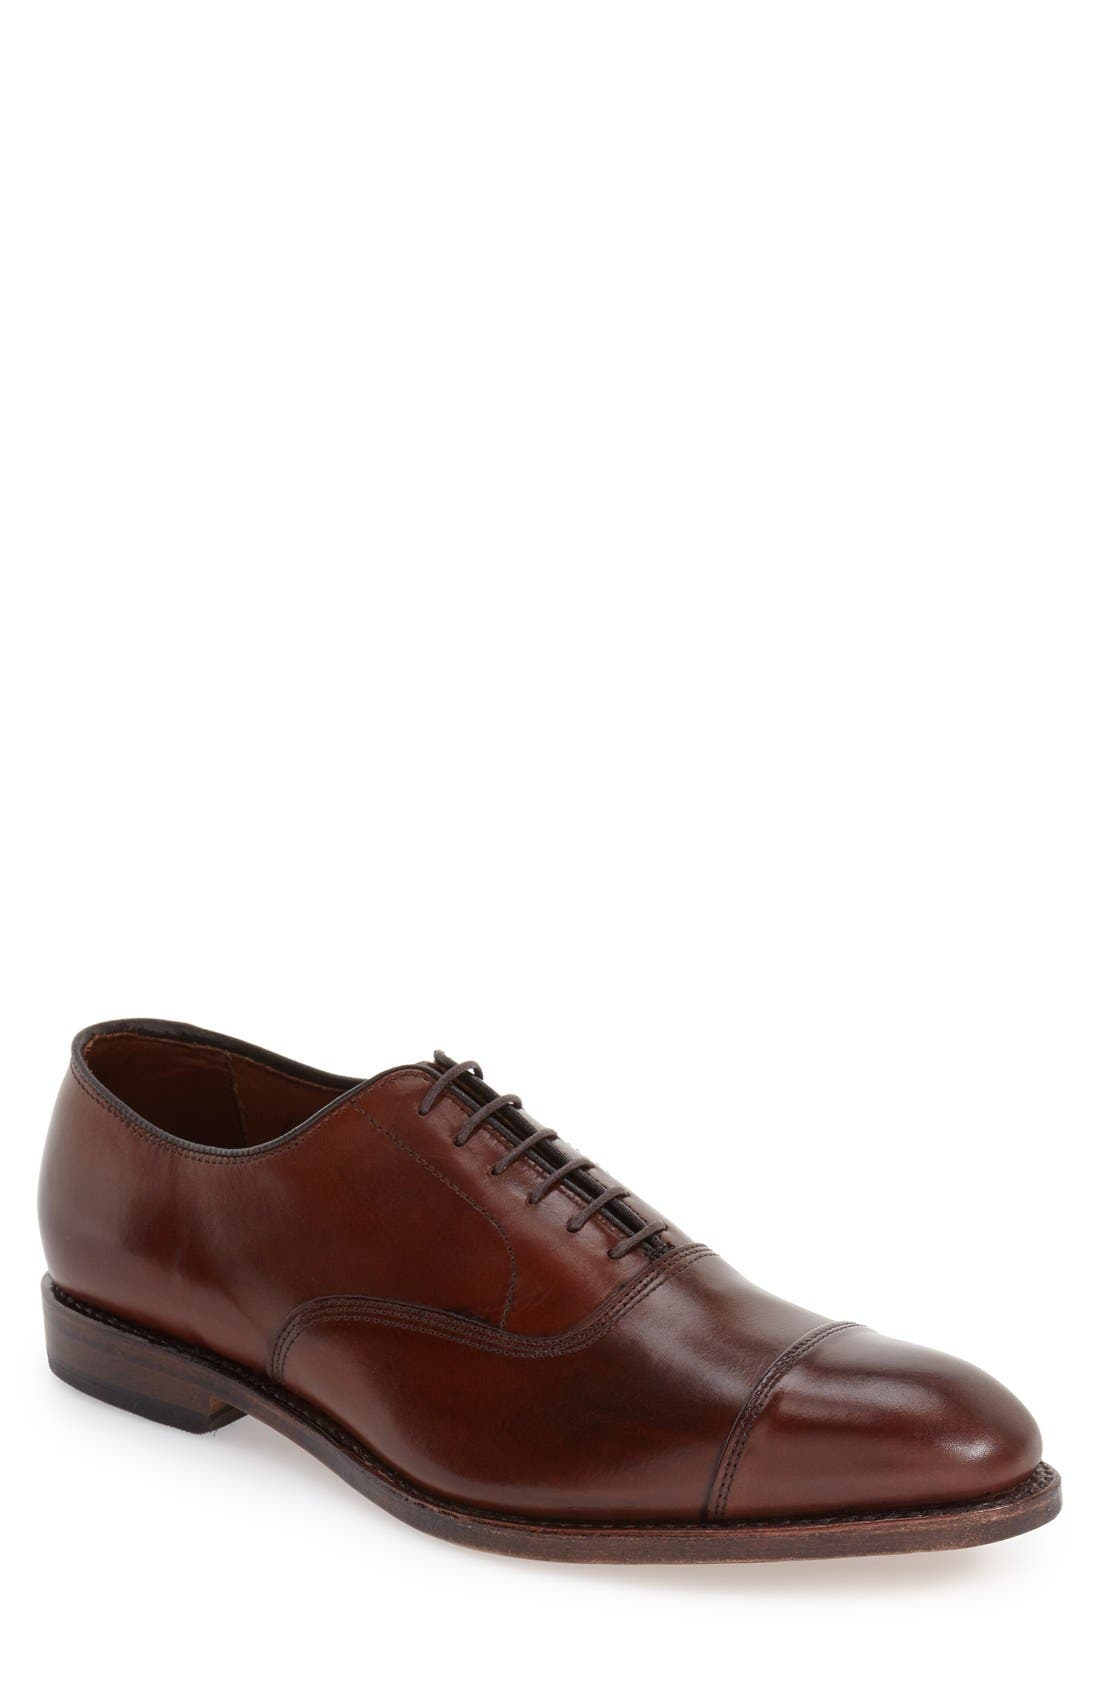 'Park Avenue' Cap Toe Oxford,                             Main thumbnail 1, color,                             DARK CHILI BURNISHED